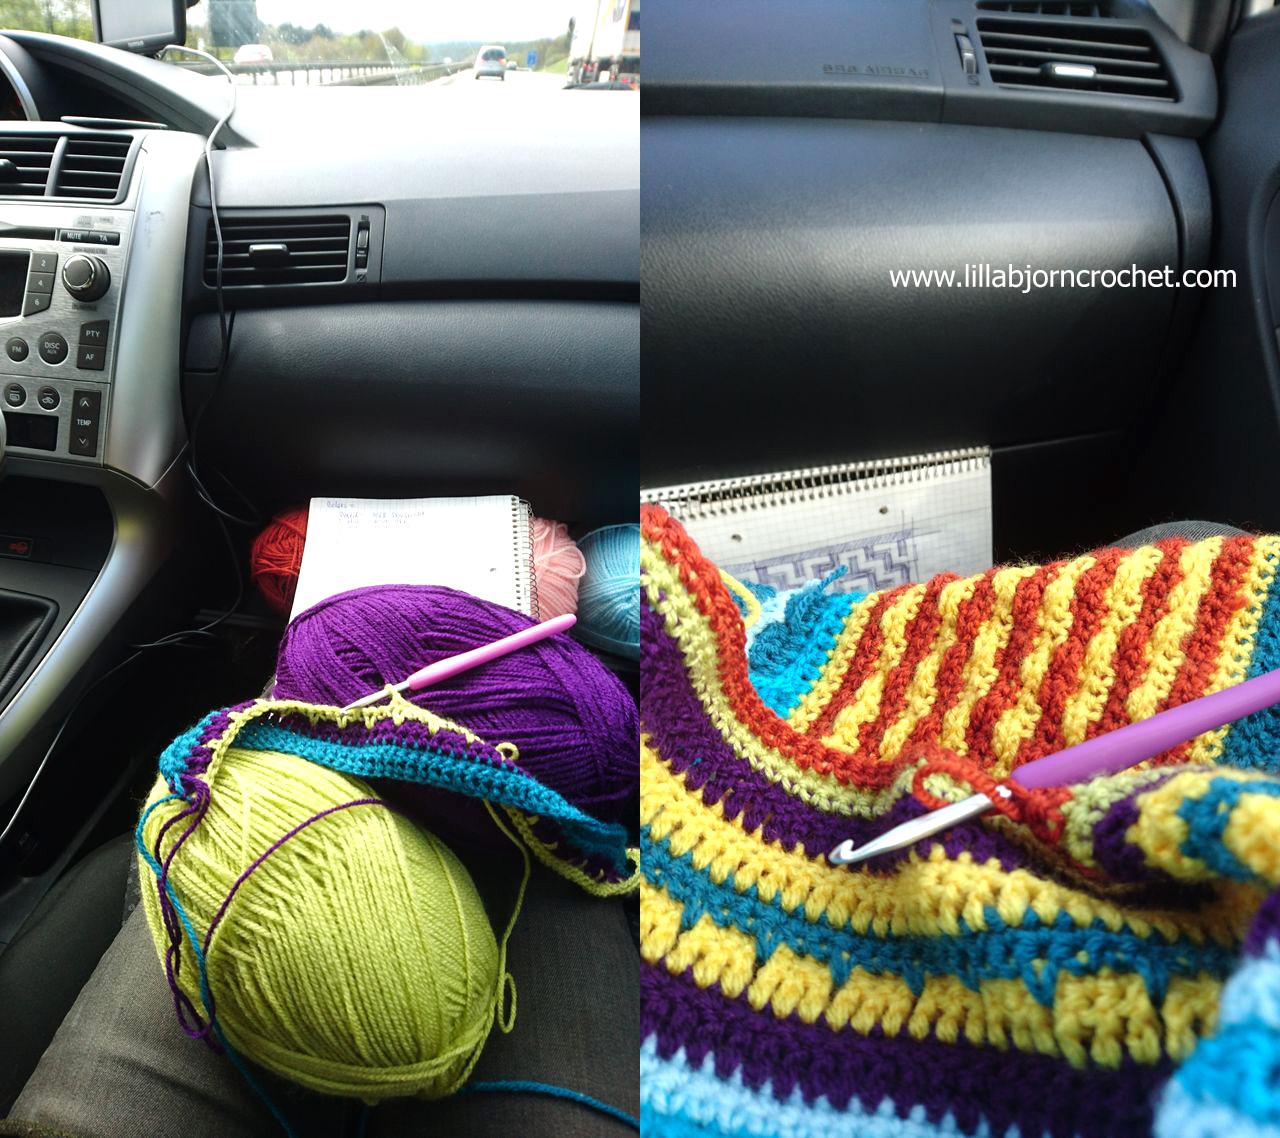 Extreme crochet in traffic jams: birth of a new blanket design ...